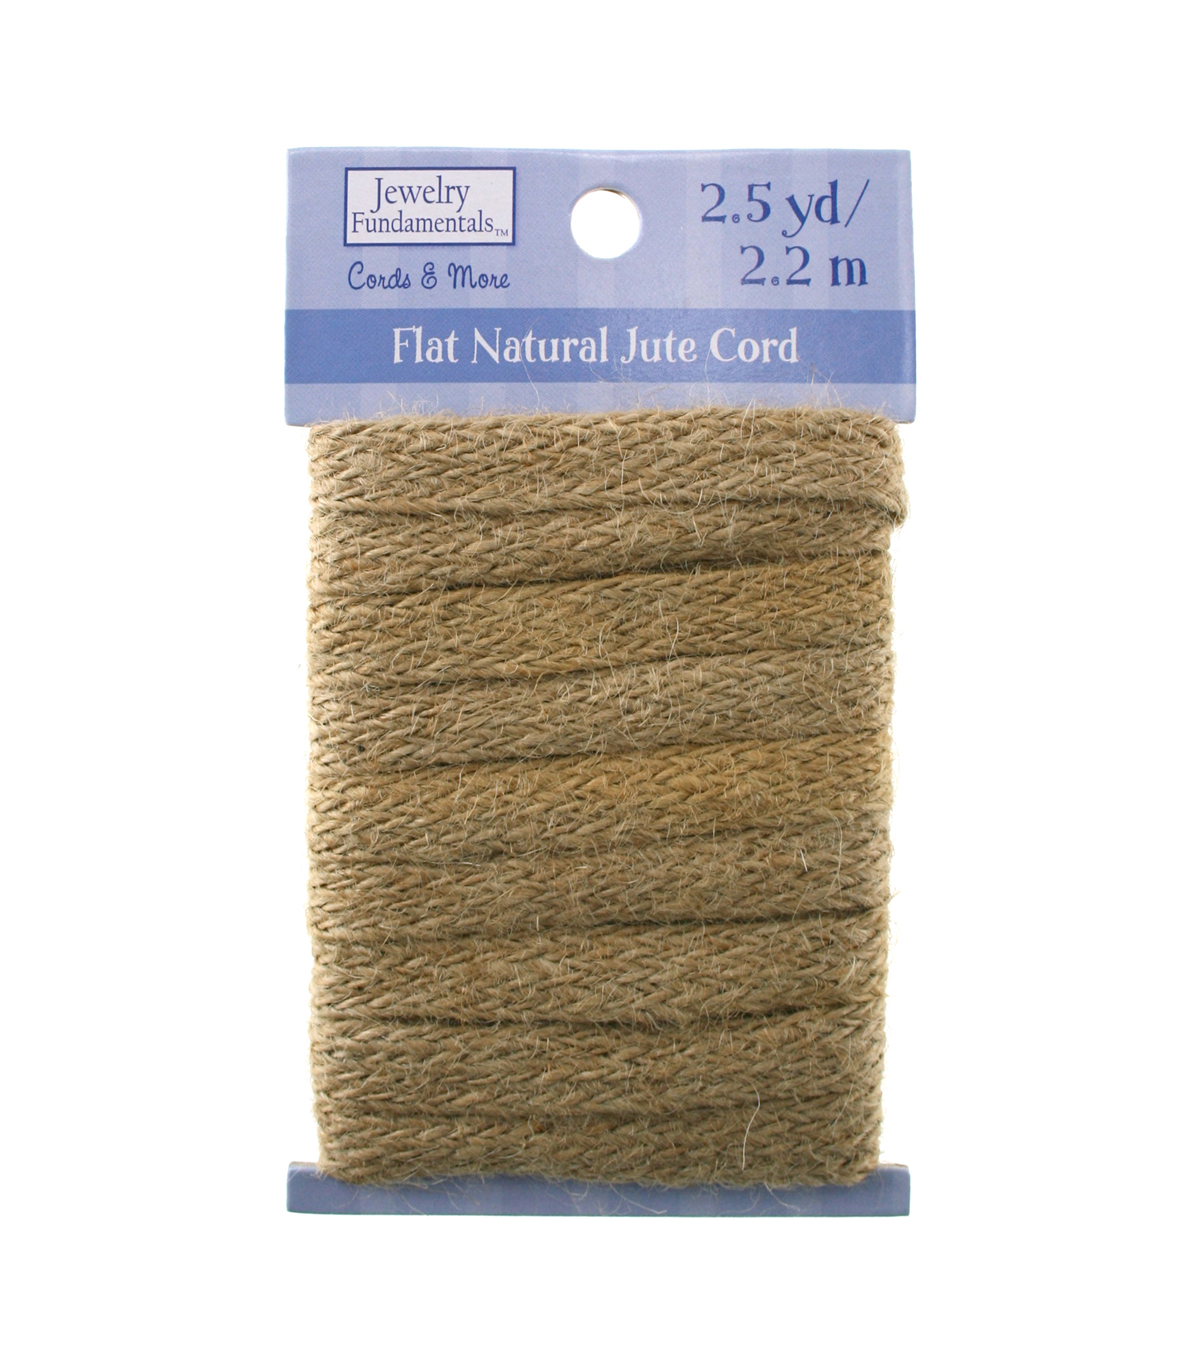 Jewelry Fundamentals Cords & More Flat Natural Jute Cord - Tan